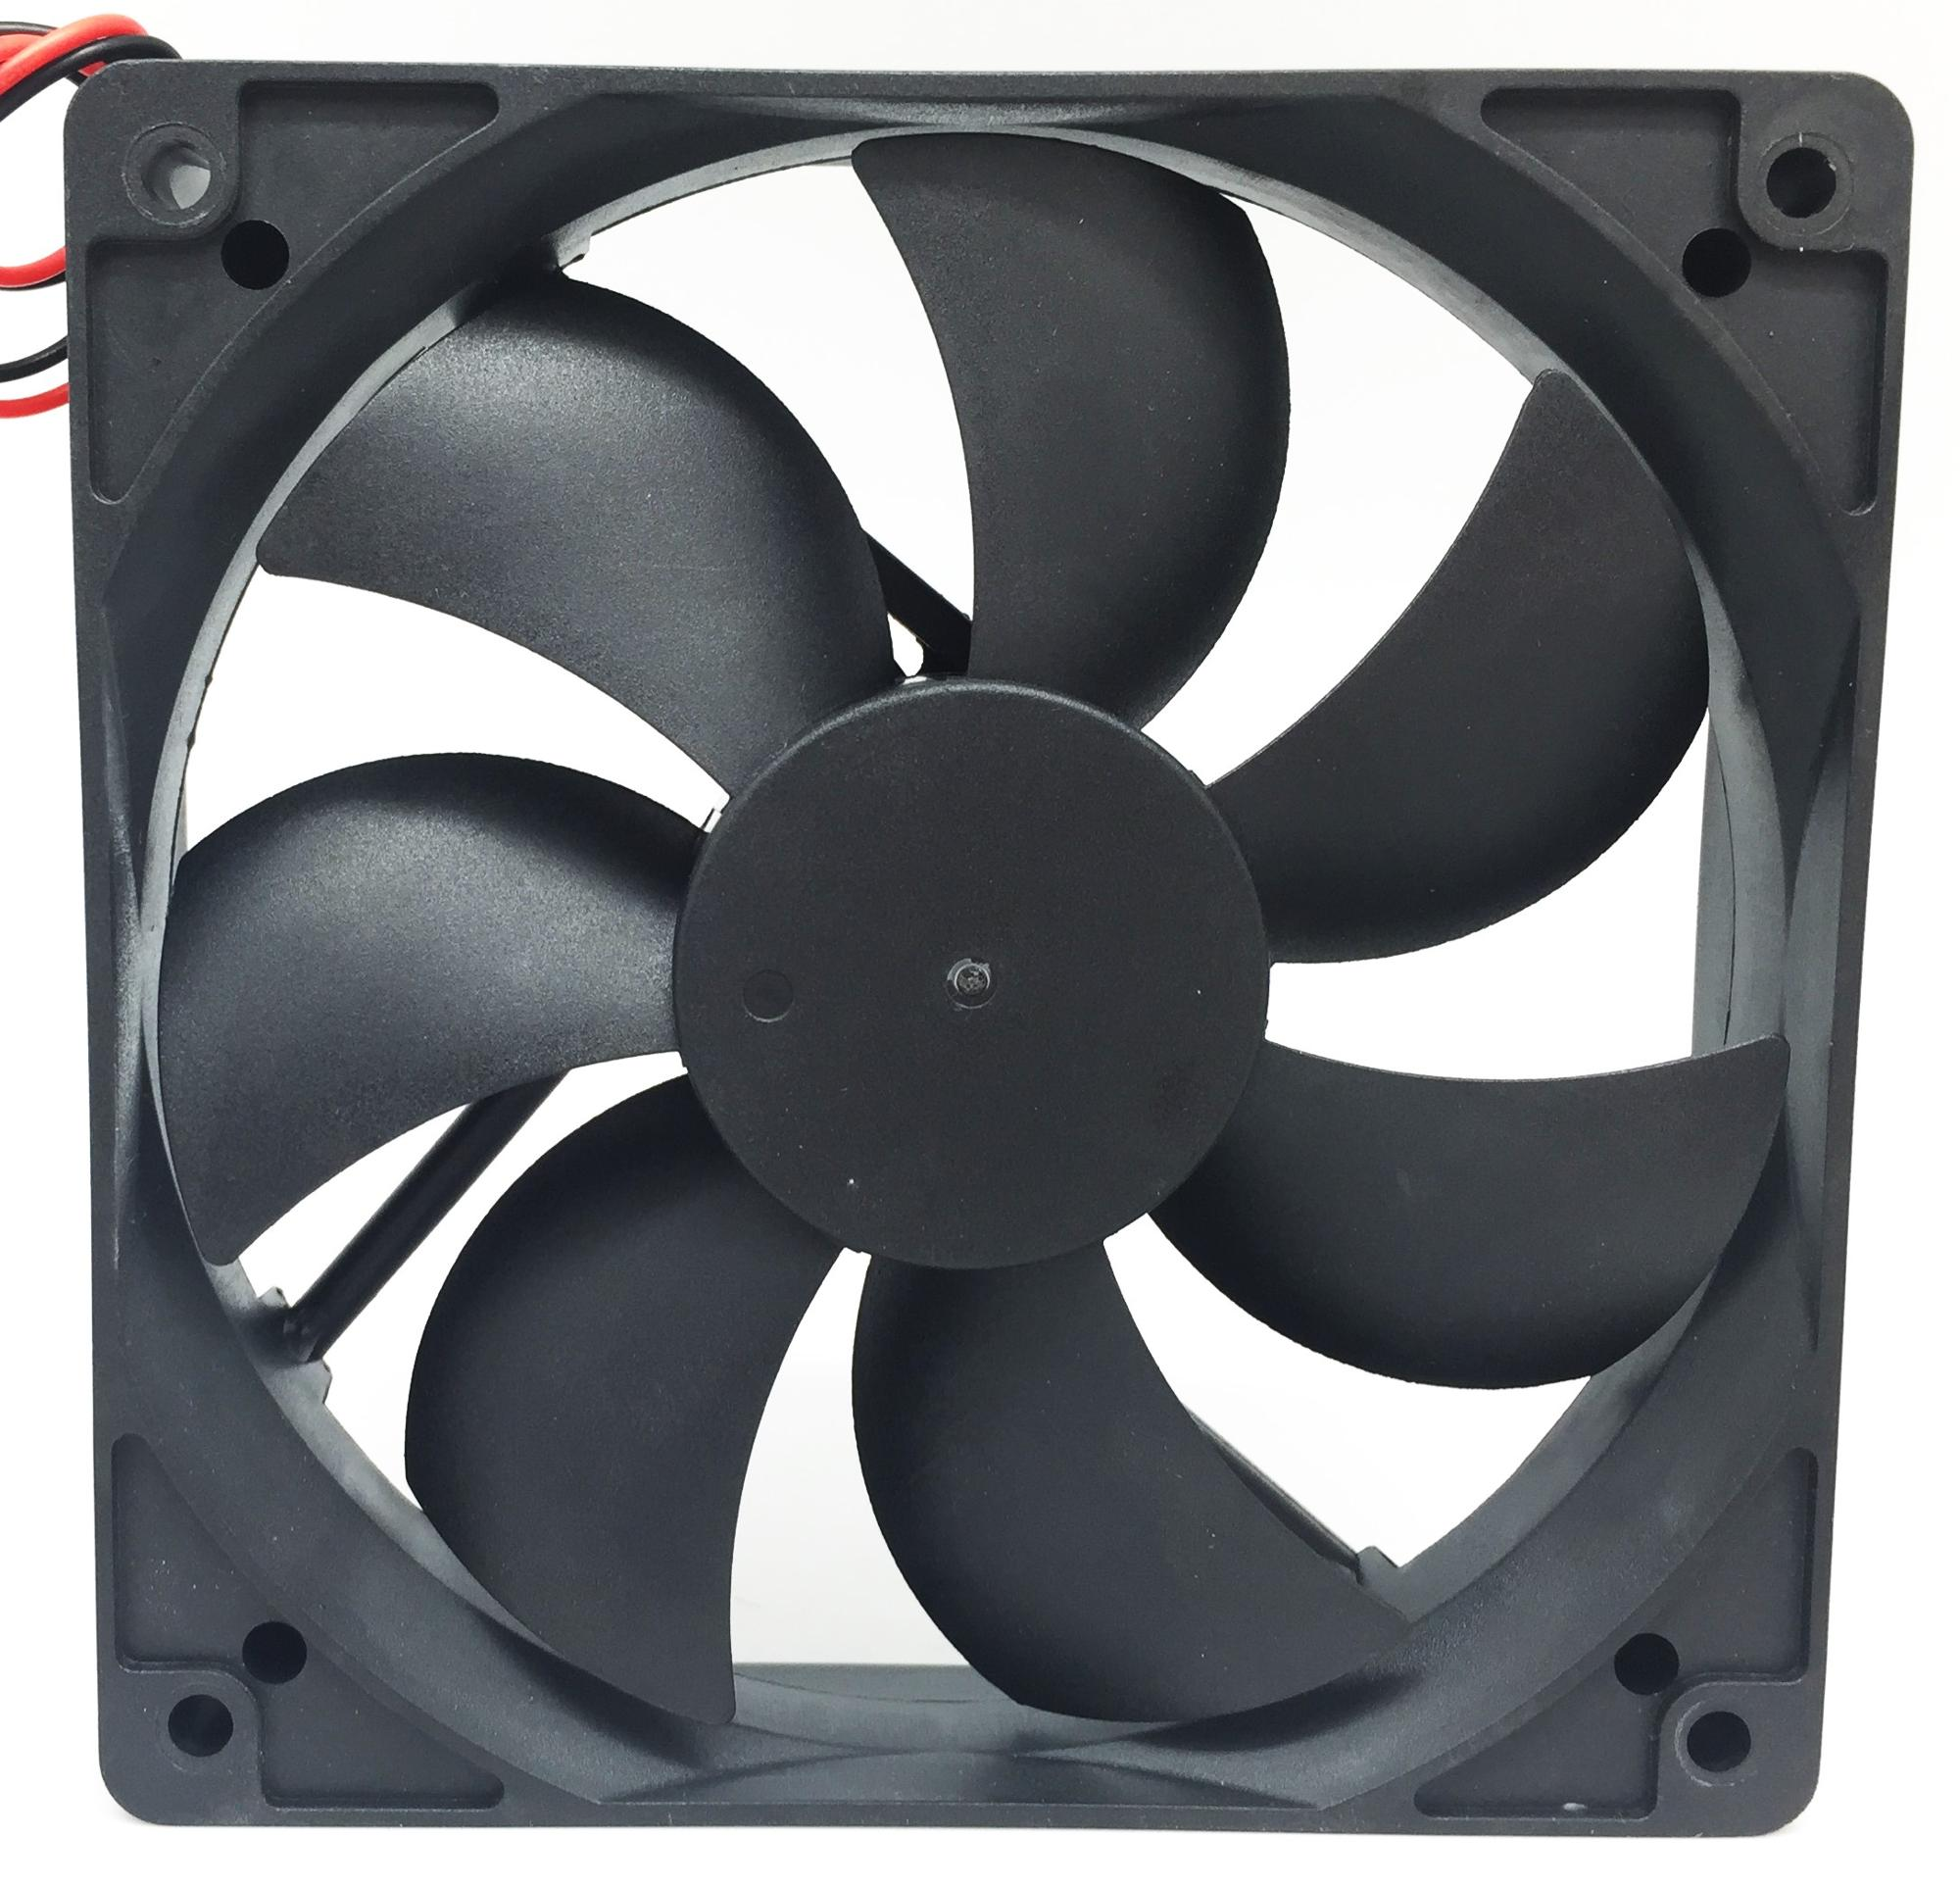 China Manufacturer 12025 120mm Axial cooling fan 12v 24v  120x120x25  high speed Cooler Fan